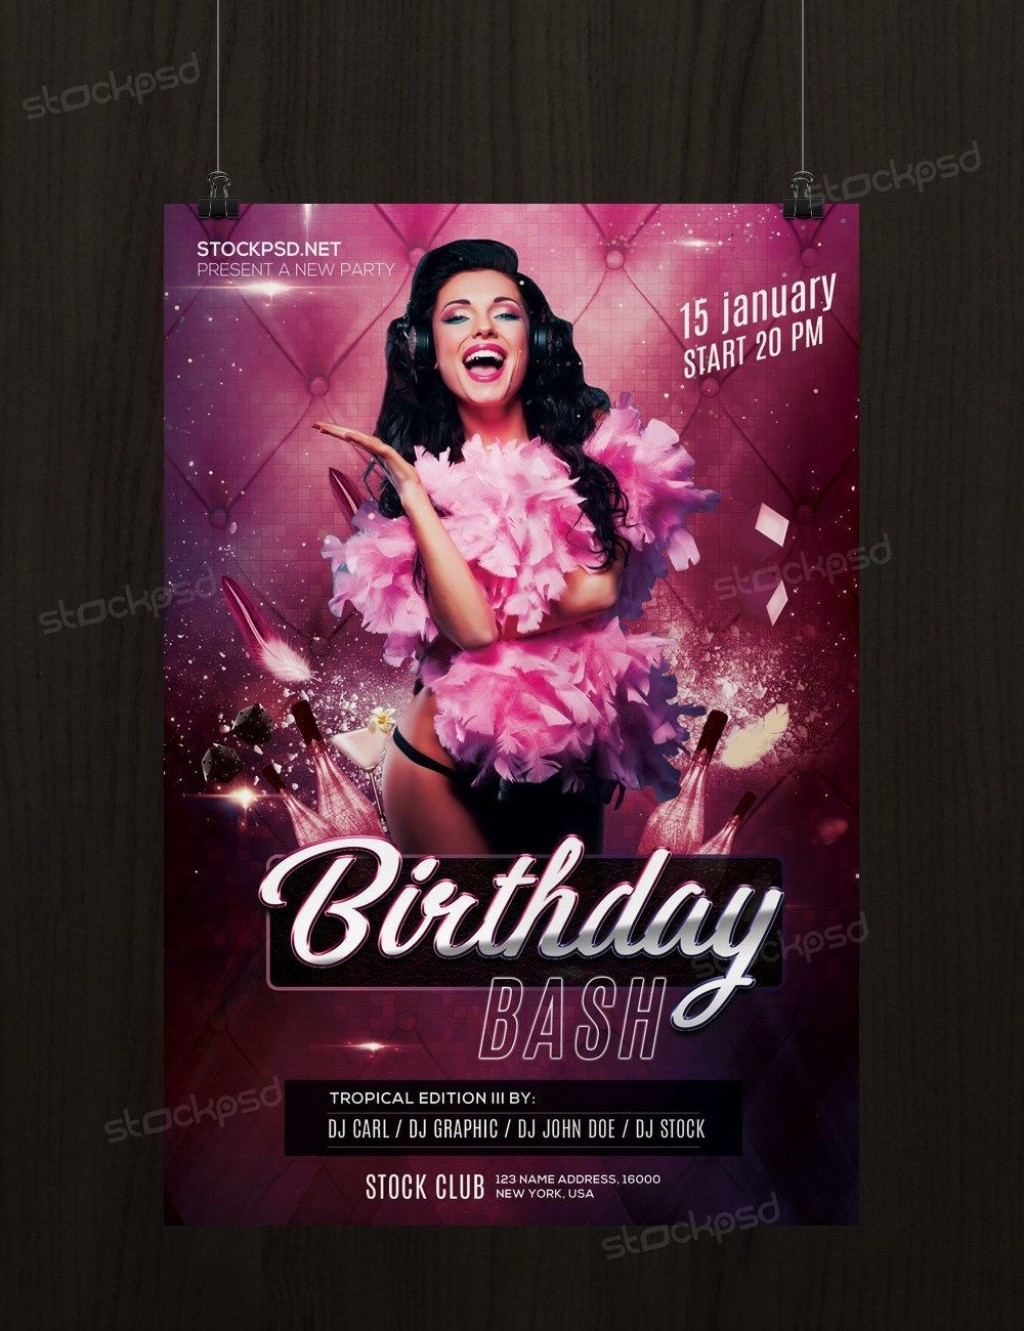 004 Wonderful Free Birthday Flyer Template Psd High Definition  Foam Party - Neon Glow Download PoolLarge